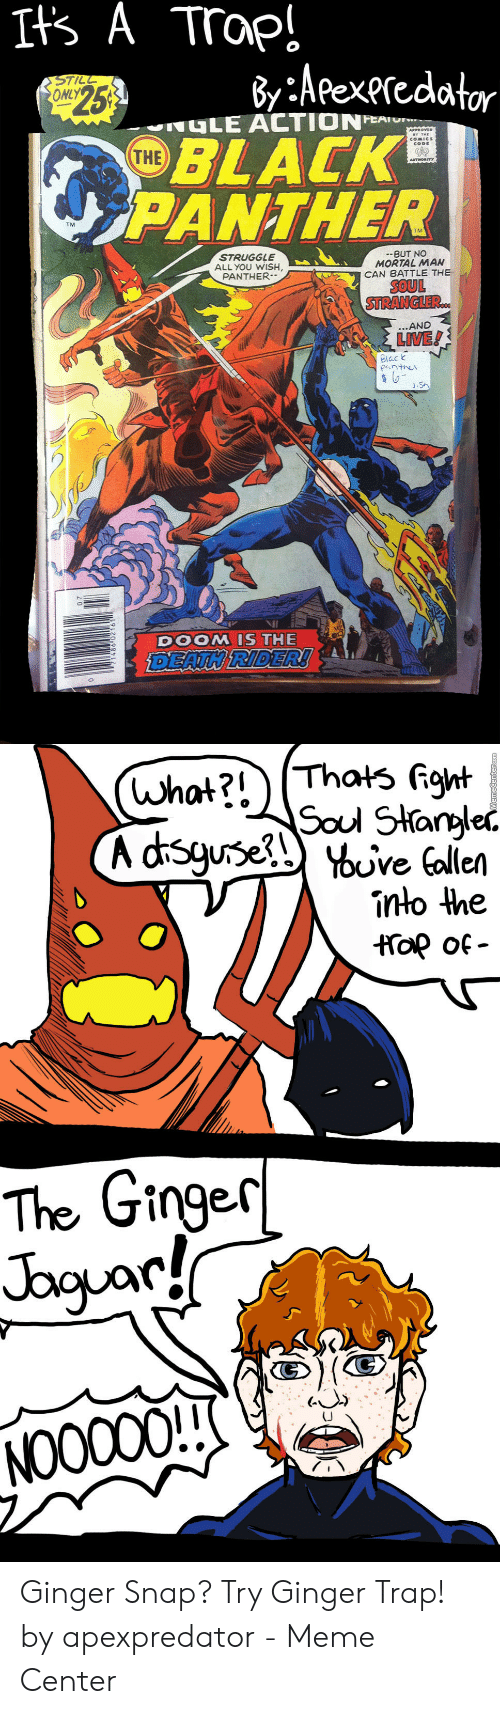 Ginger Snap Meme: Its A Trap!  By :Aeexeredator  BLACK  PANTHER  STILL  ONLY  $253  GLE ACTIONE  THE  ROYED  COMICS  AUTWORITY  STRUGGLE  ALL YOU WISH  PANTHER-  --BUT NO  MORTAL MAN  CAN BATTLE THE  SOUL  STRANGLER.  ...AND  LIVE!  Black  JSn  DOOM IS THE  DEATH RIDER!  (what?!)(Thats fight  Soul Stargle  A dsguseuve alien  into the  op of  The Ginger  Jbguary  NOOC00! Ginger Snap? Try Ginger Trap! by apexpredator - Meme Center